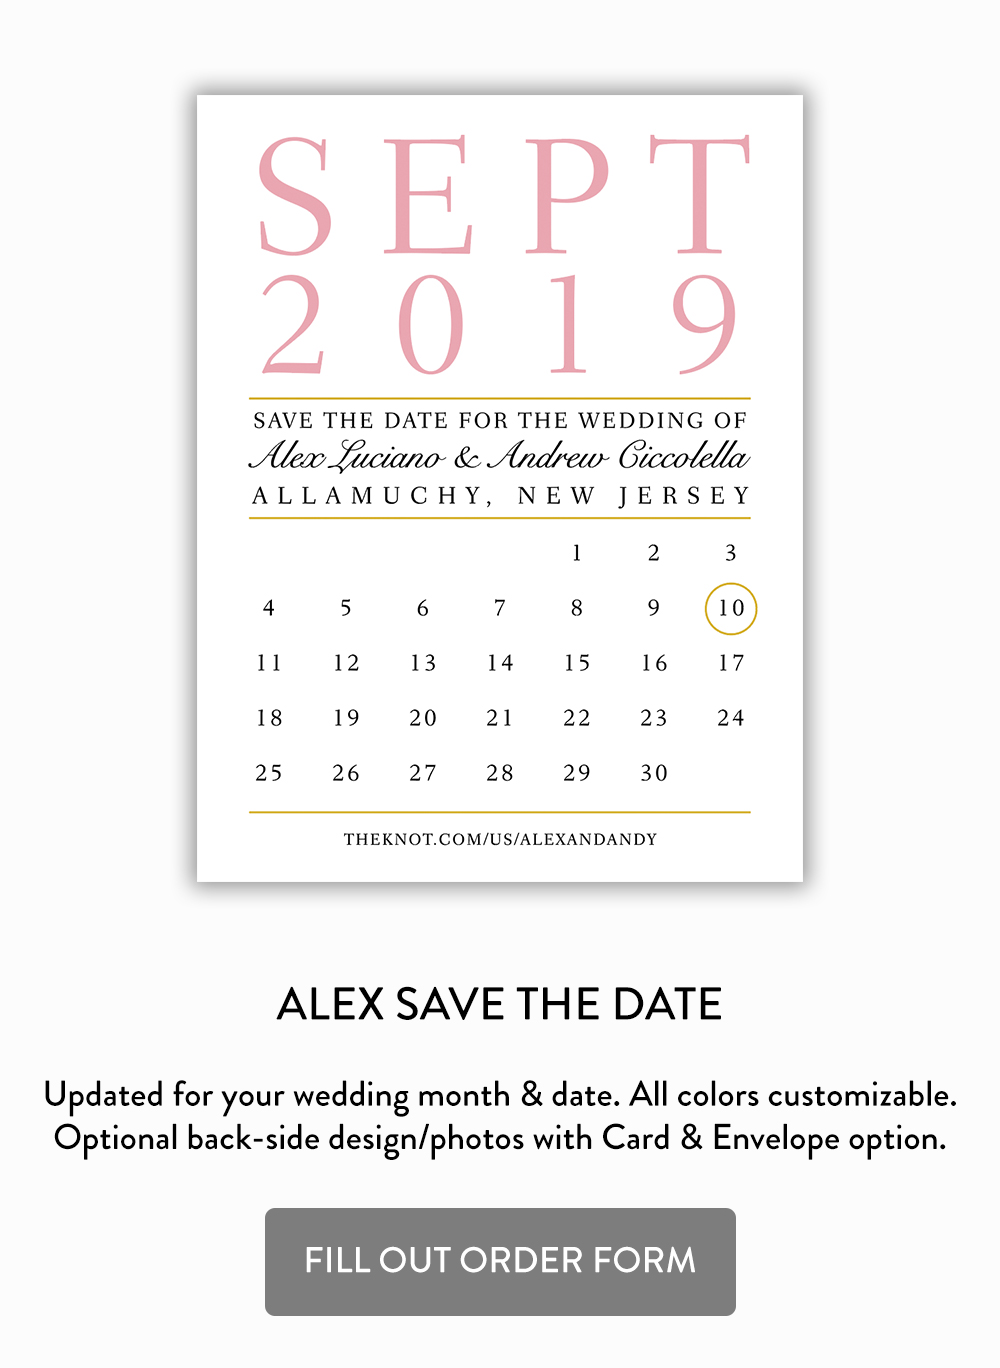 Alex-SaveTheDate.jpg